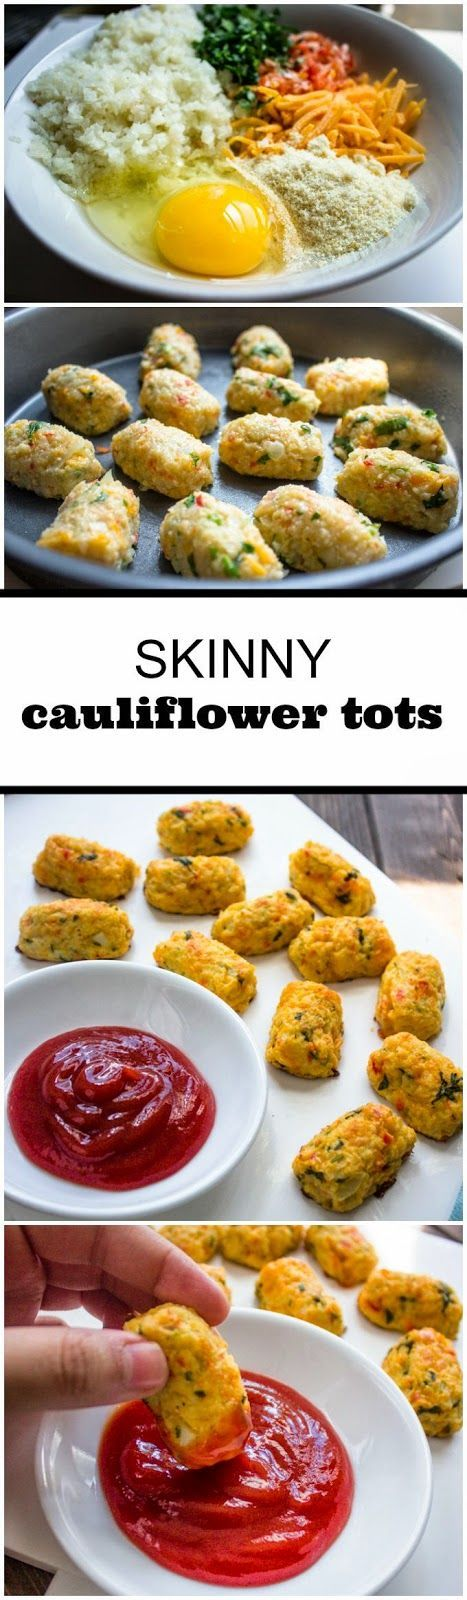 Everything Everywhere: Skinny Baked Cauliflower Tots